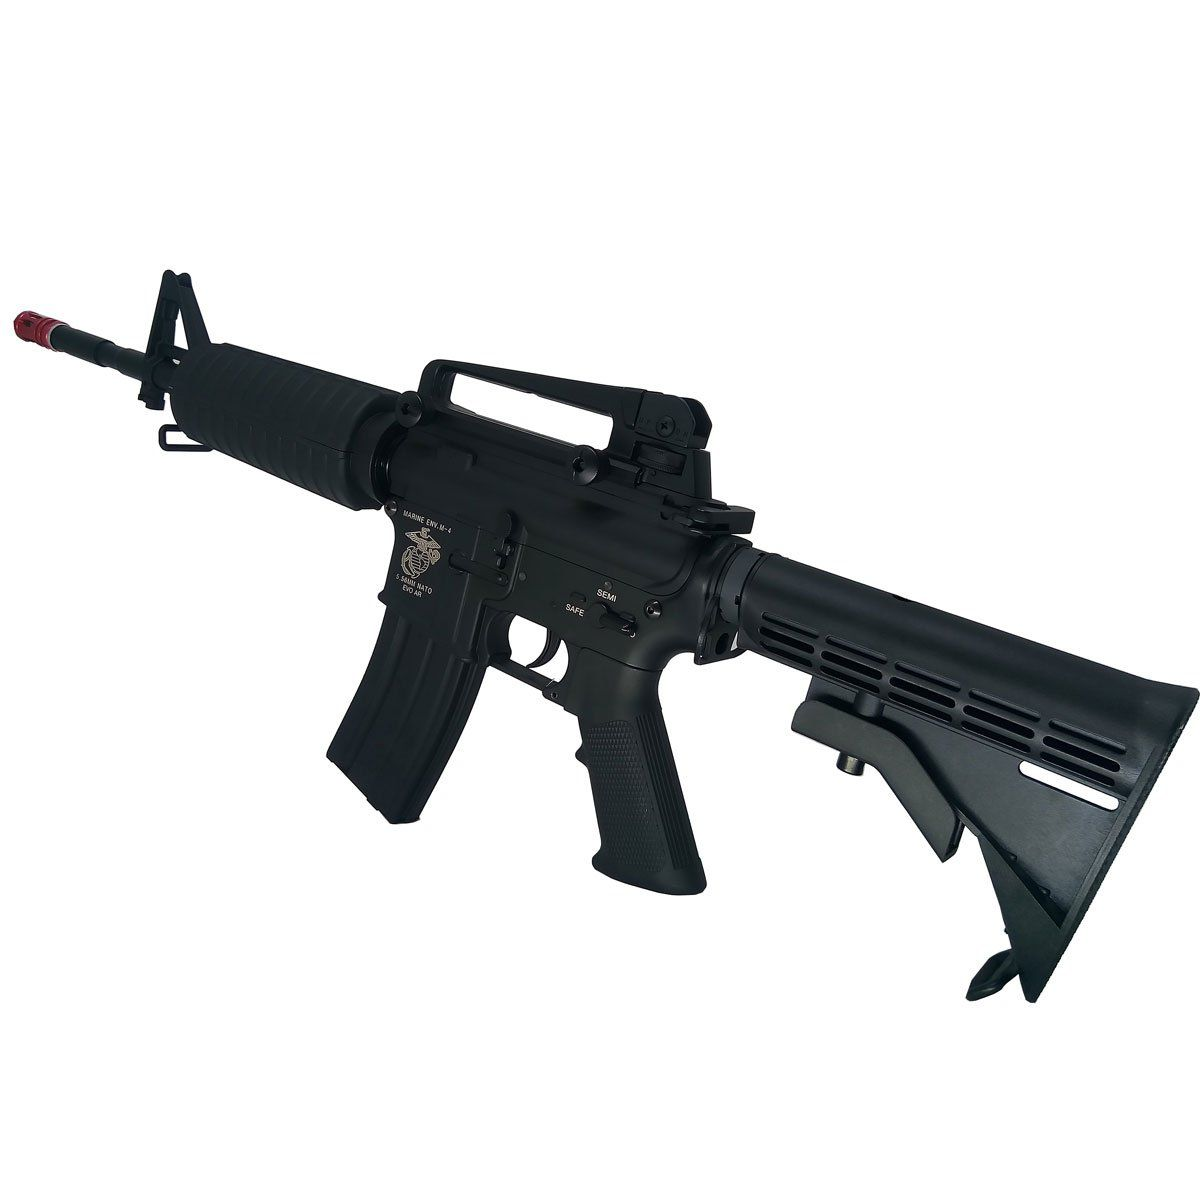 Rifle de Airsoft Evo M4A1 Carbine Elétrico 6mm